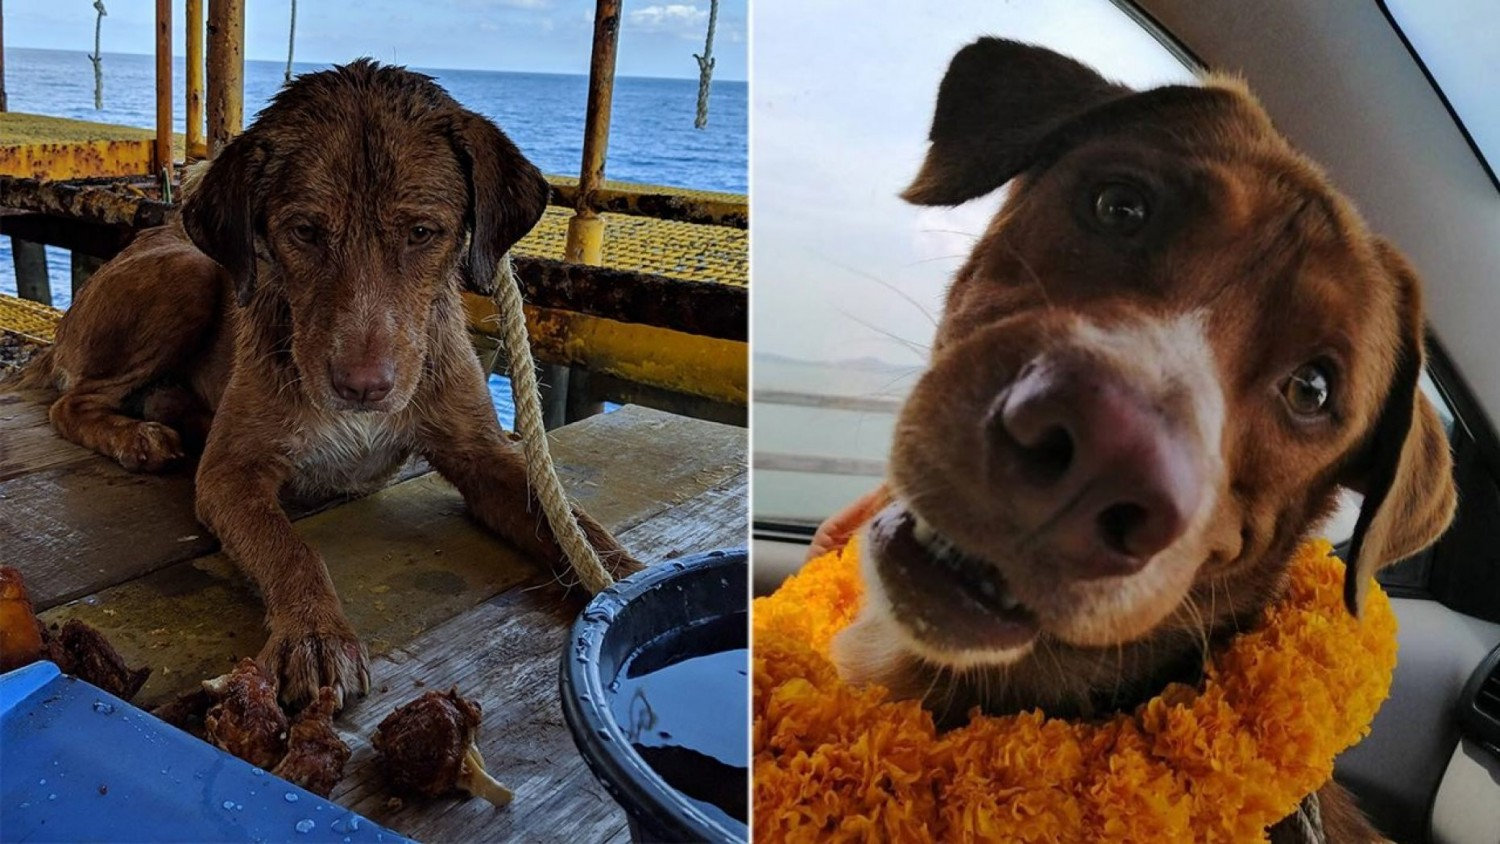 Thailand – Dog Discovered Paddling 130 Miles From Shore Rescued By Oil Rig Workers